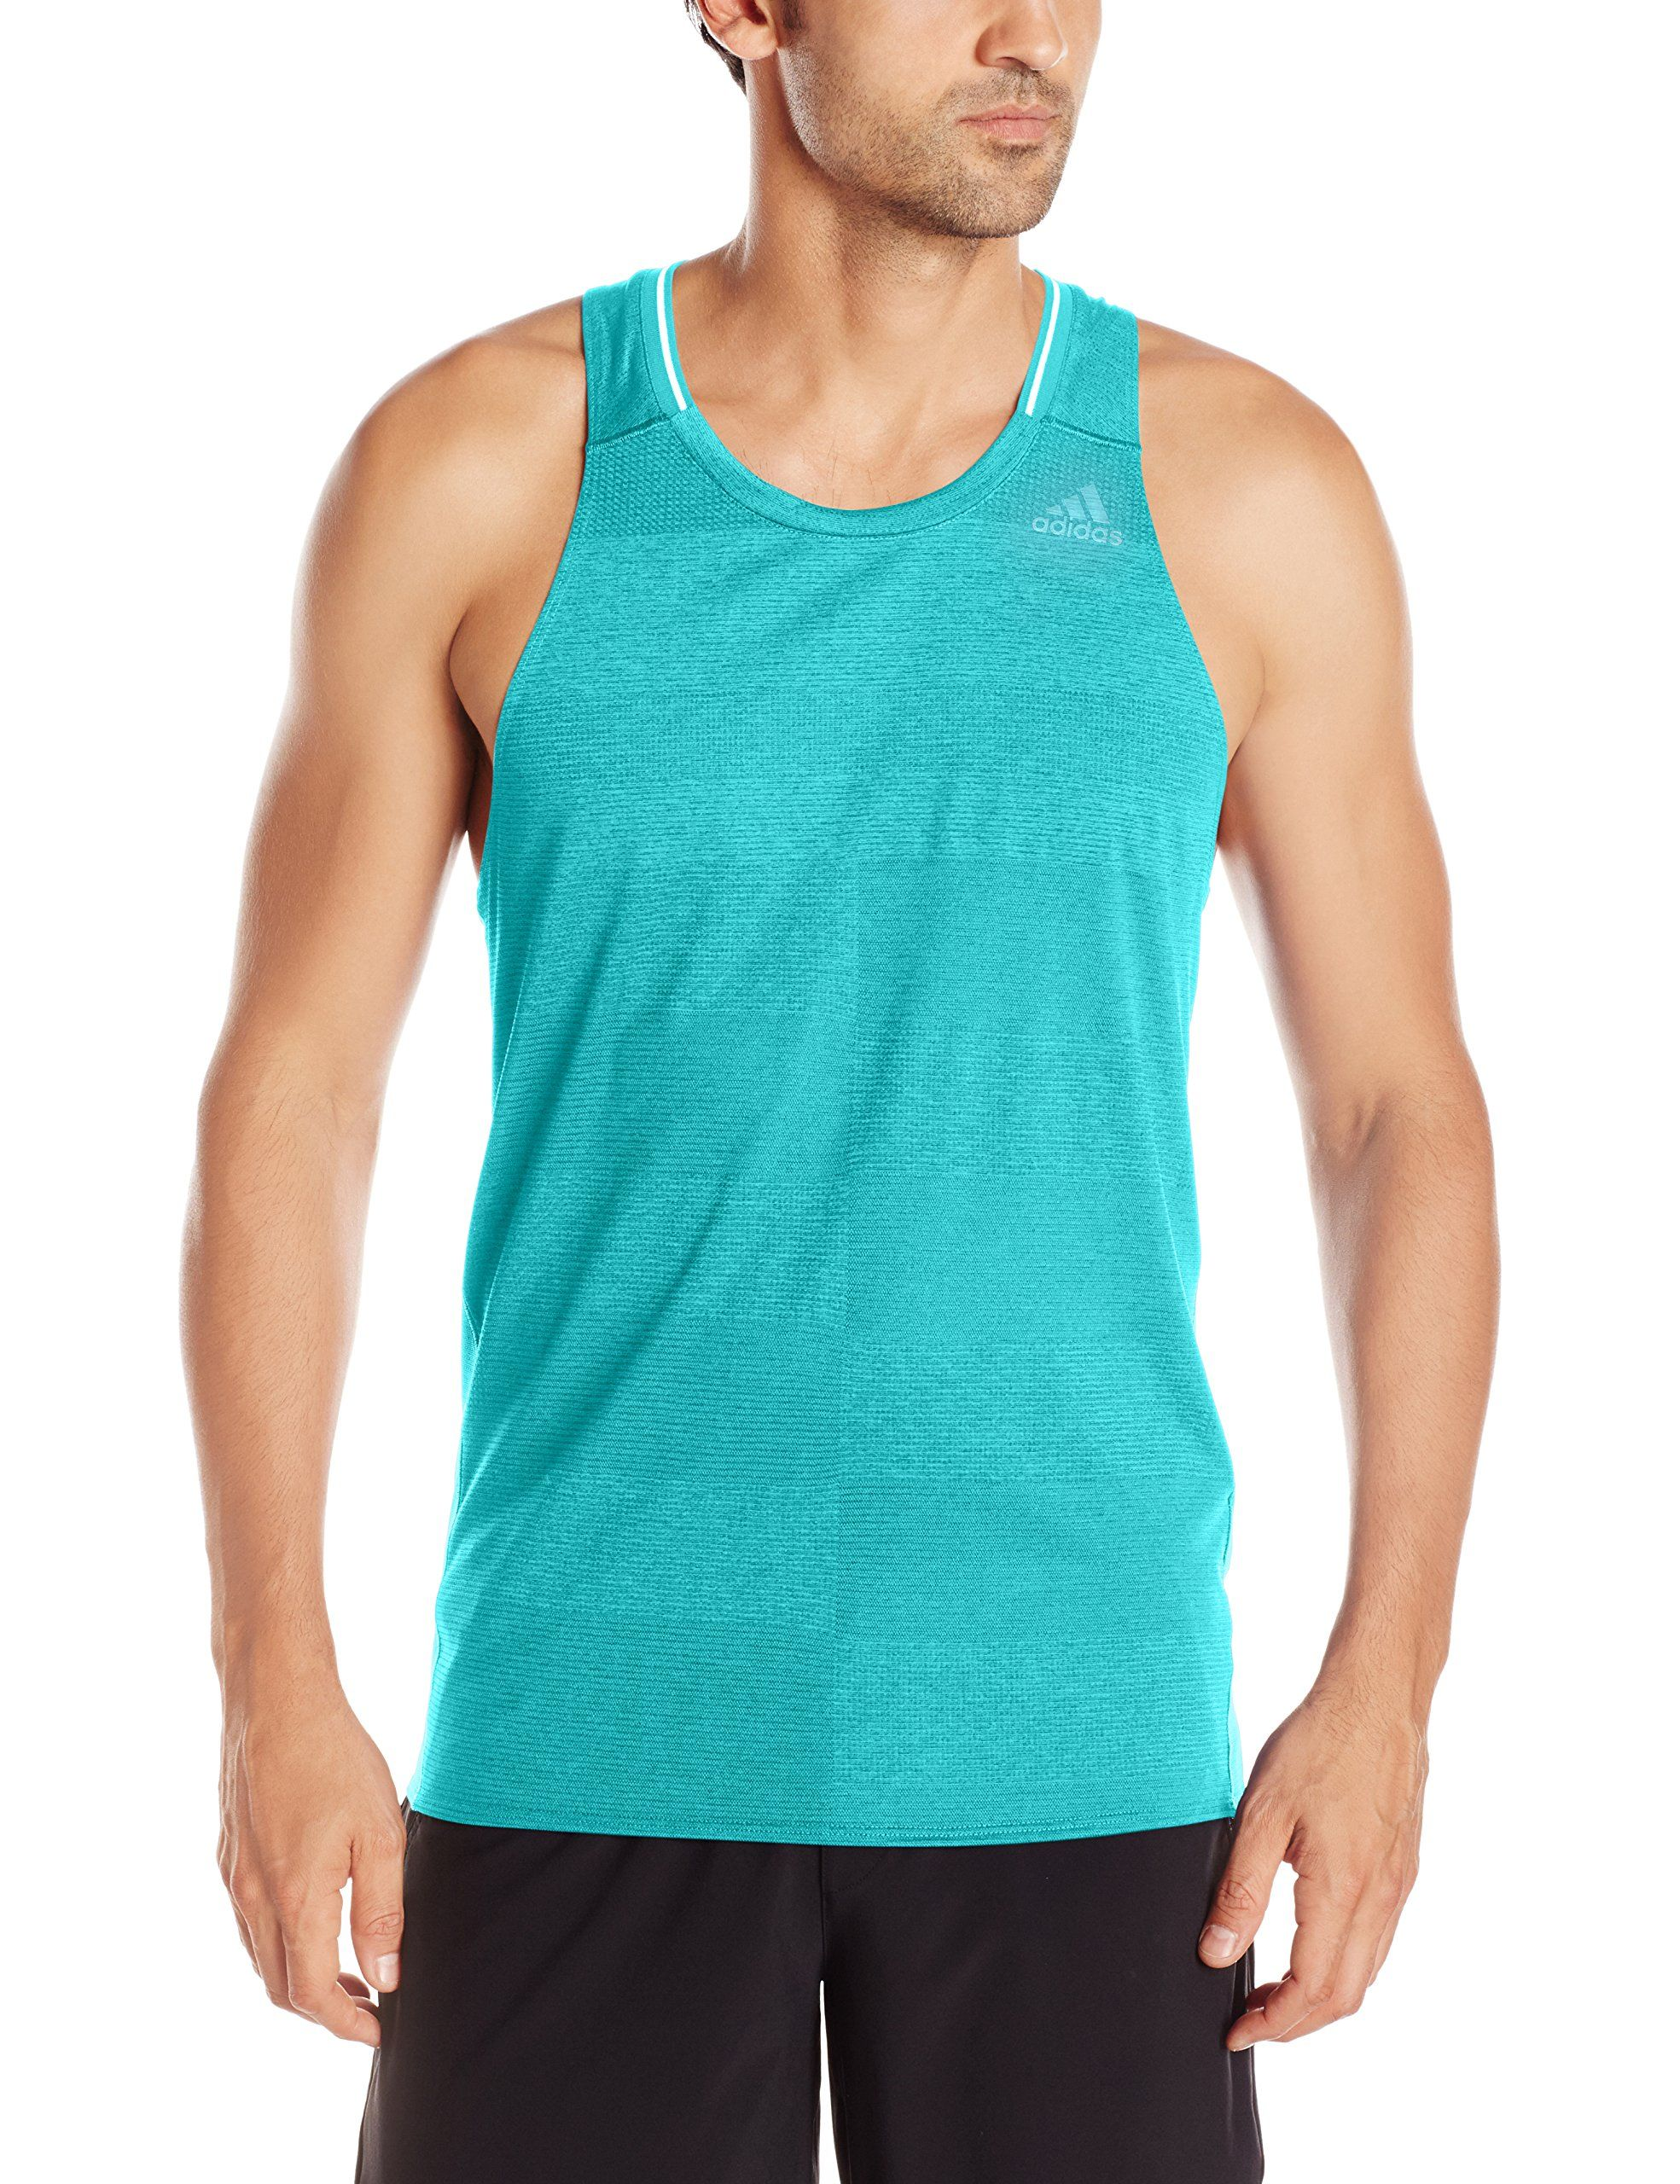 check out 7cb52 b6982 adidas Men s Running Supernova A Singlet Tank Top, Energy Blue, Large.  climalite fabric